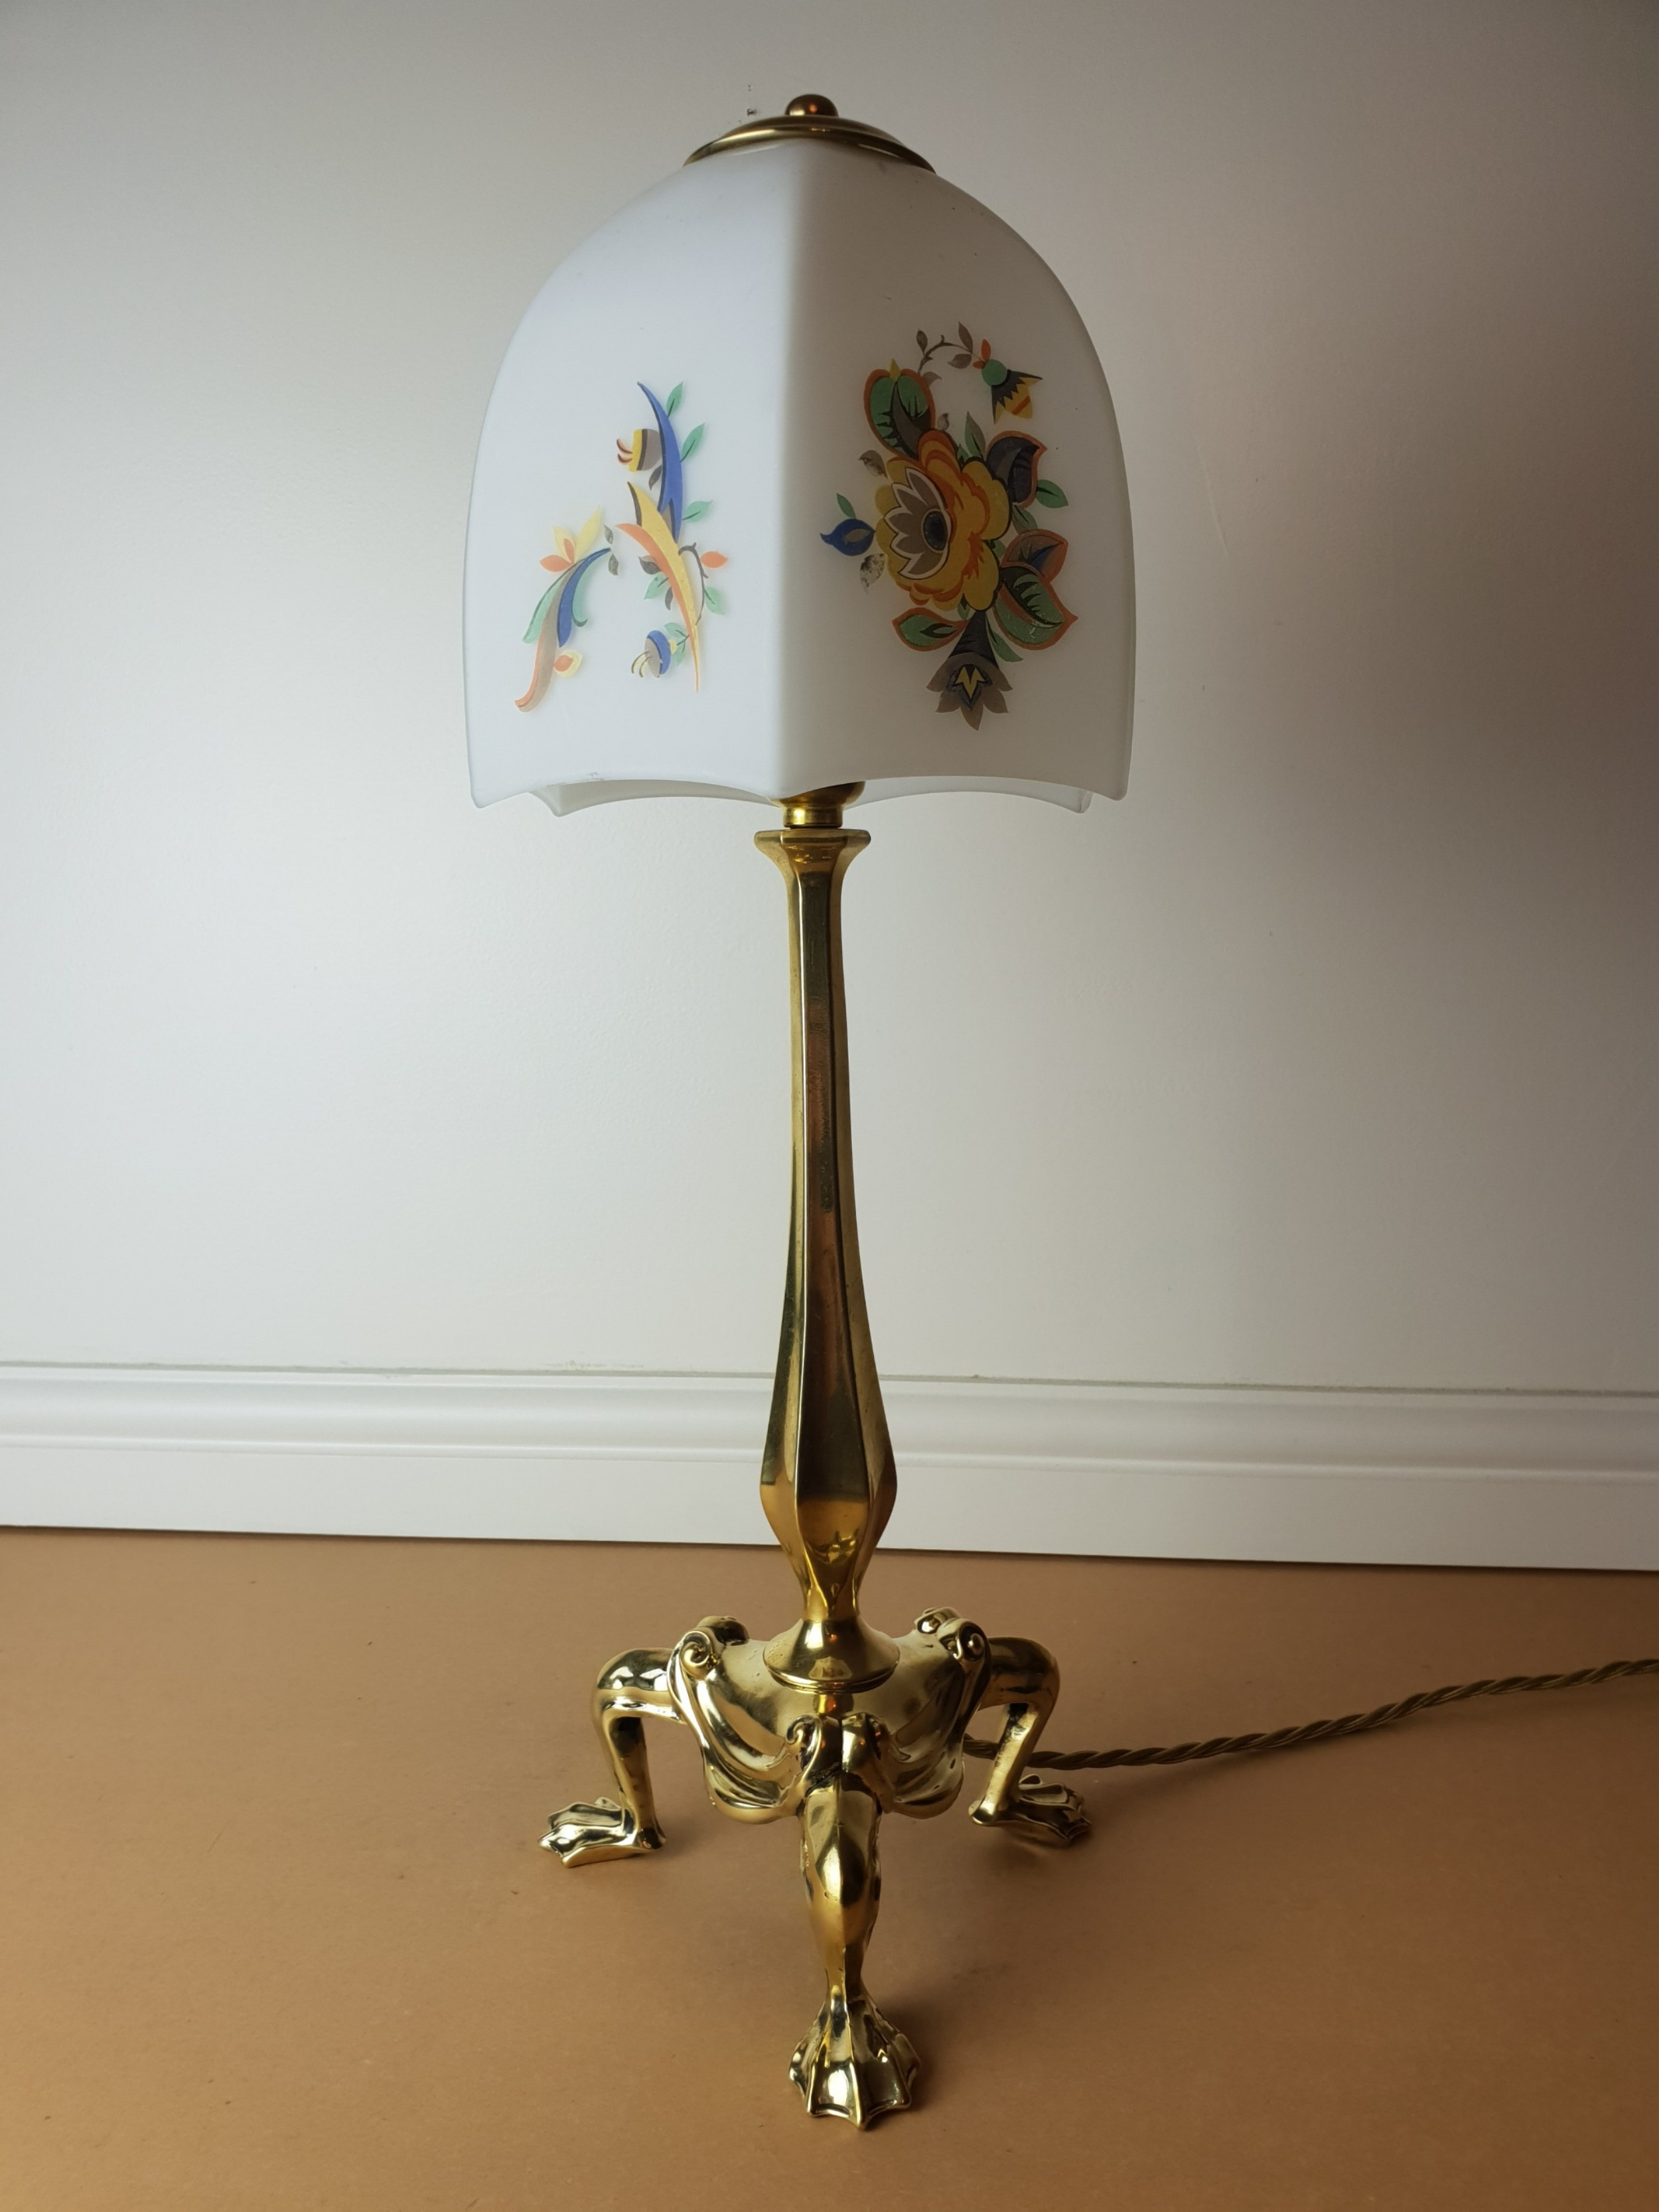 Faraday and sons brass pullman table lamp with floral ceramic shade faraday and sons brass pullman table lamp with floral ceramic shade rewired and pat tested greentooth Gallery